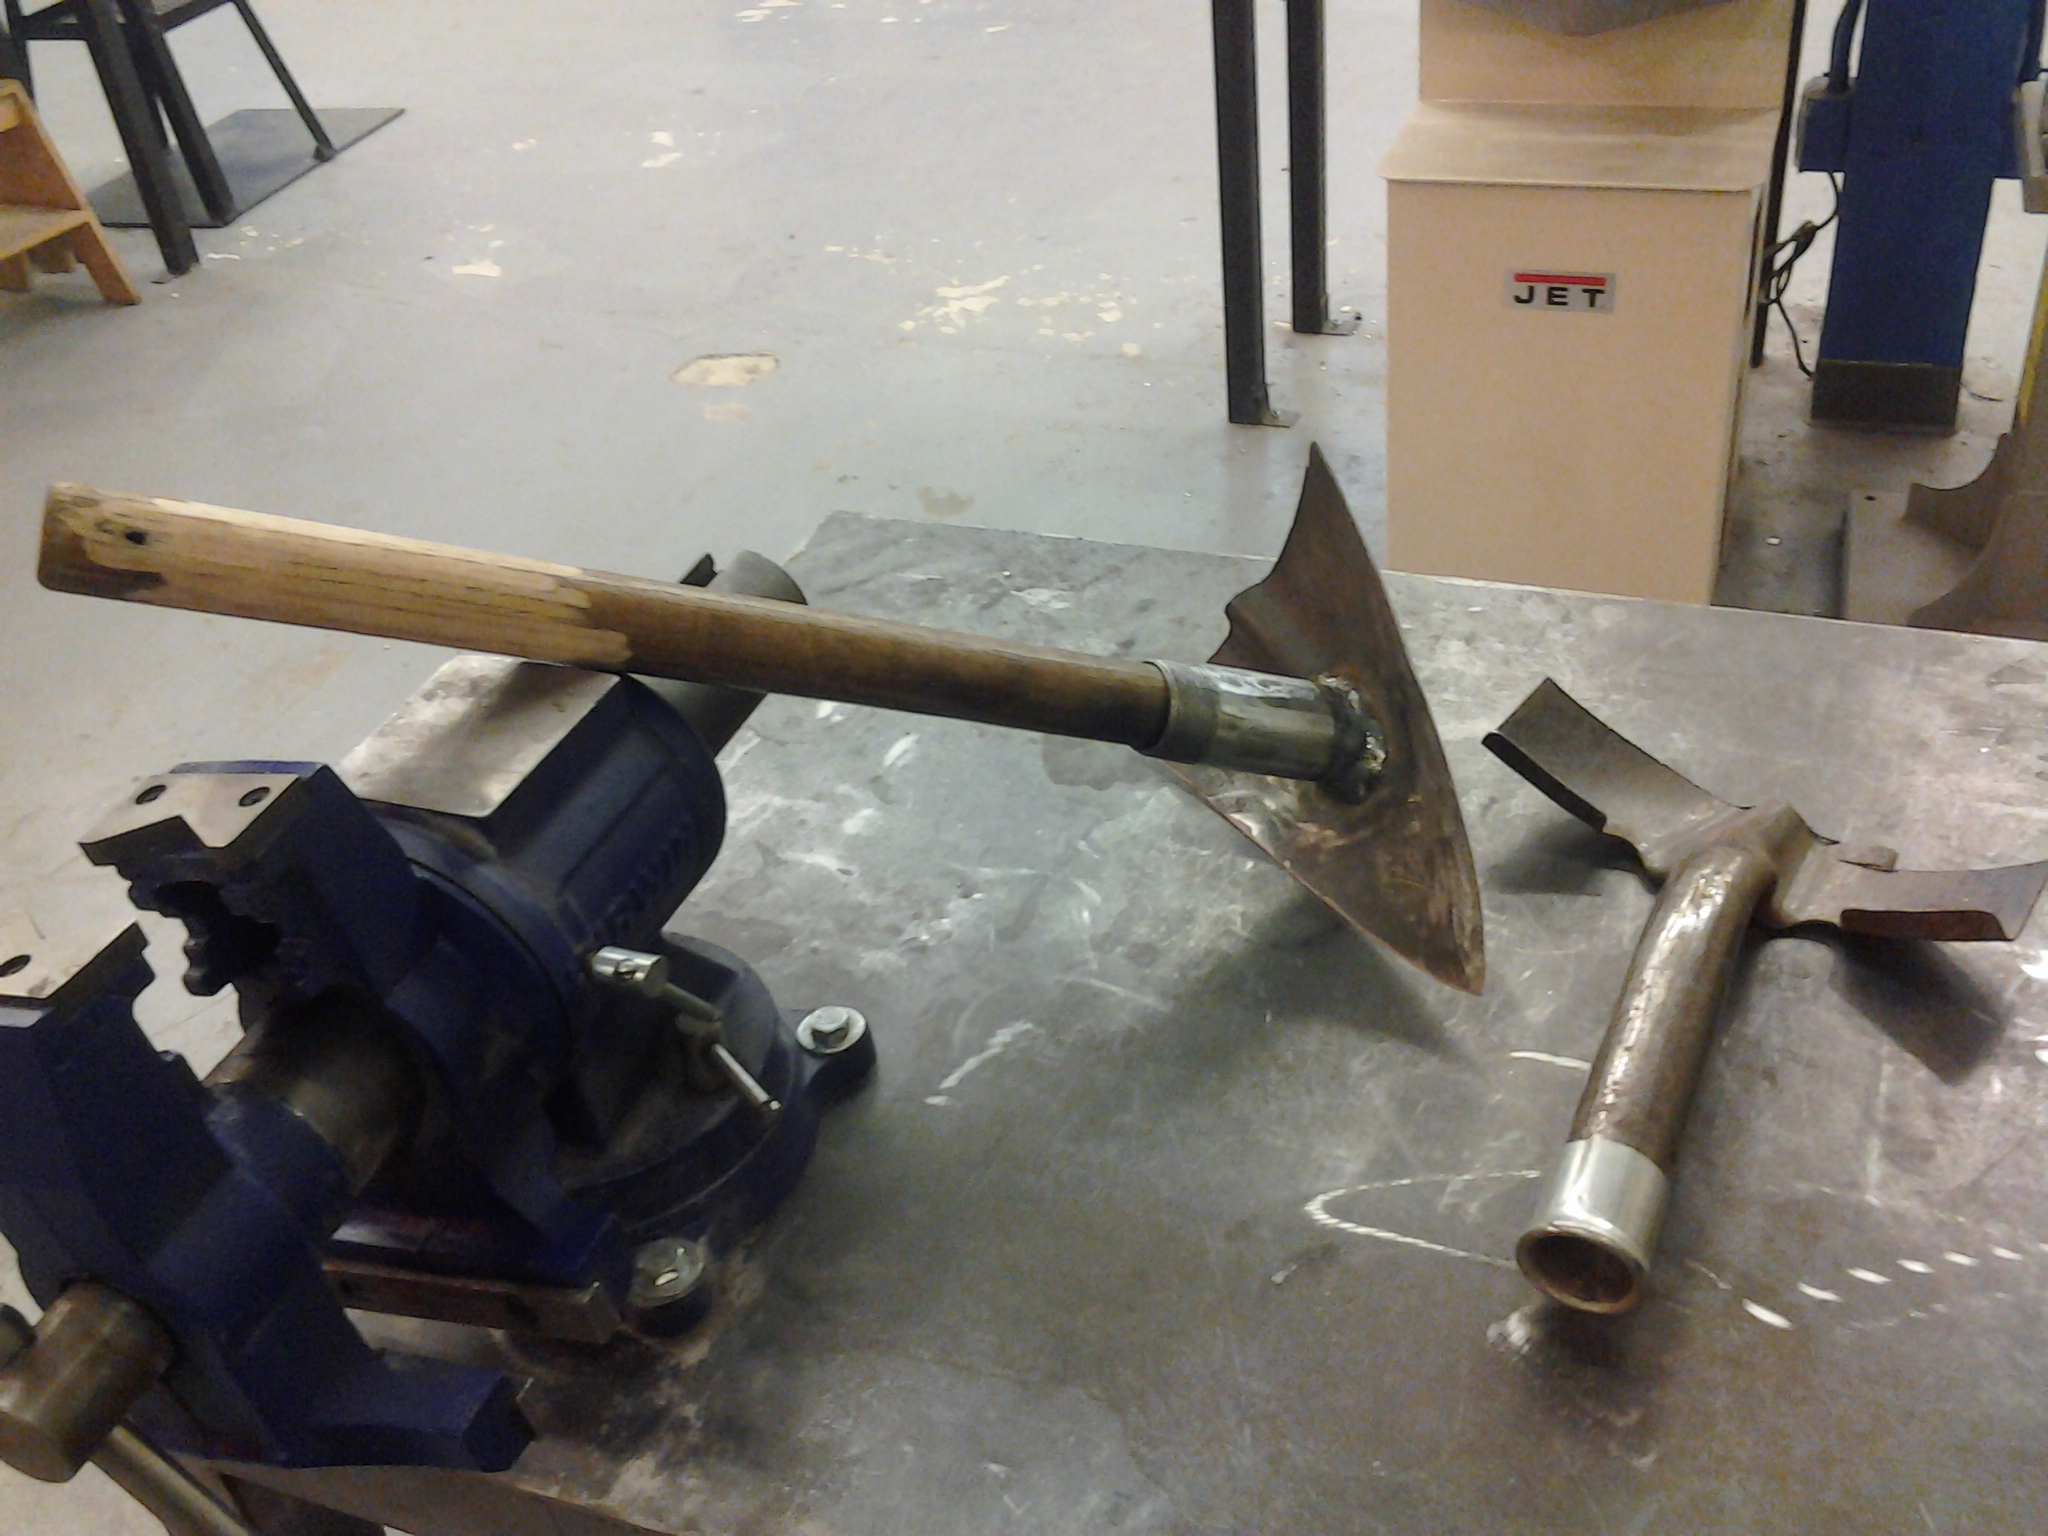 small hoe scrapper and pick